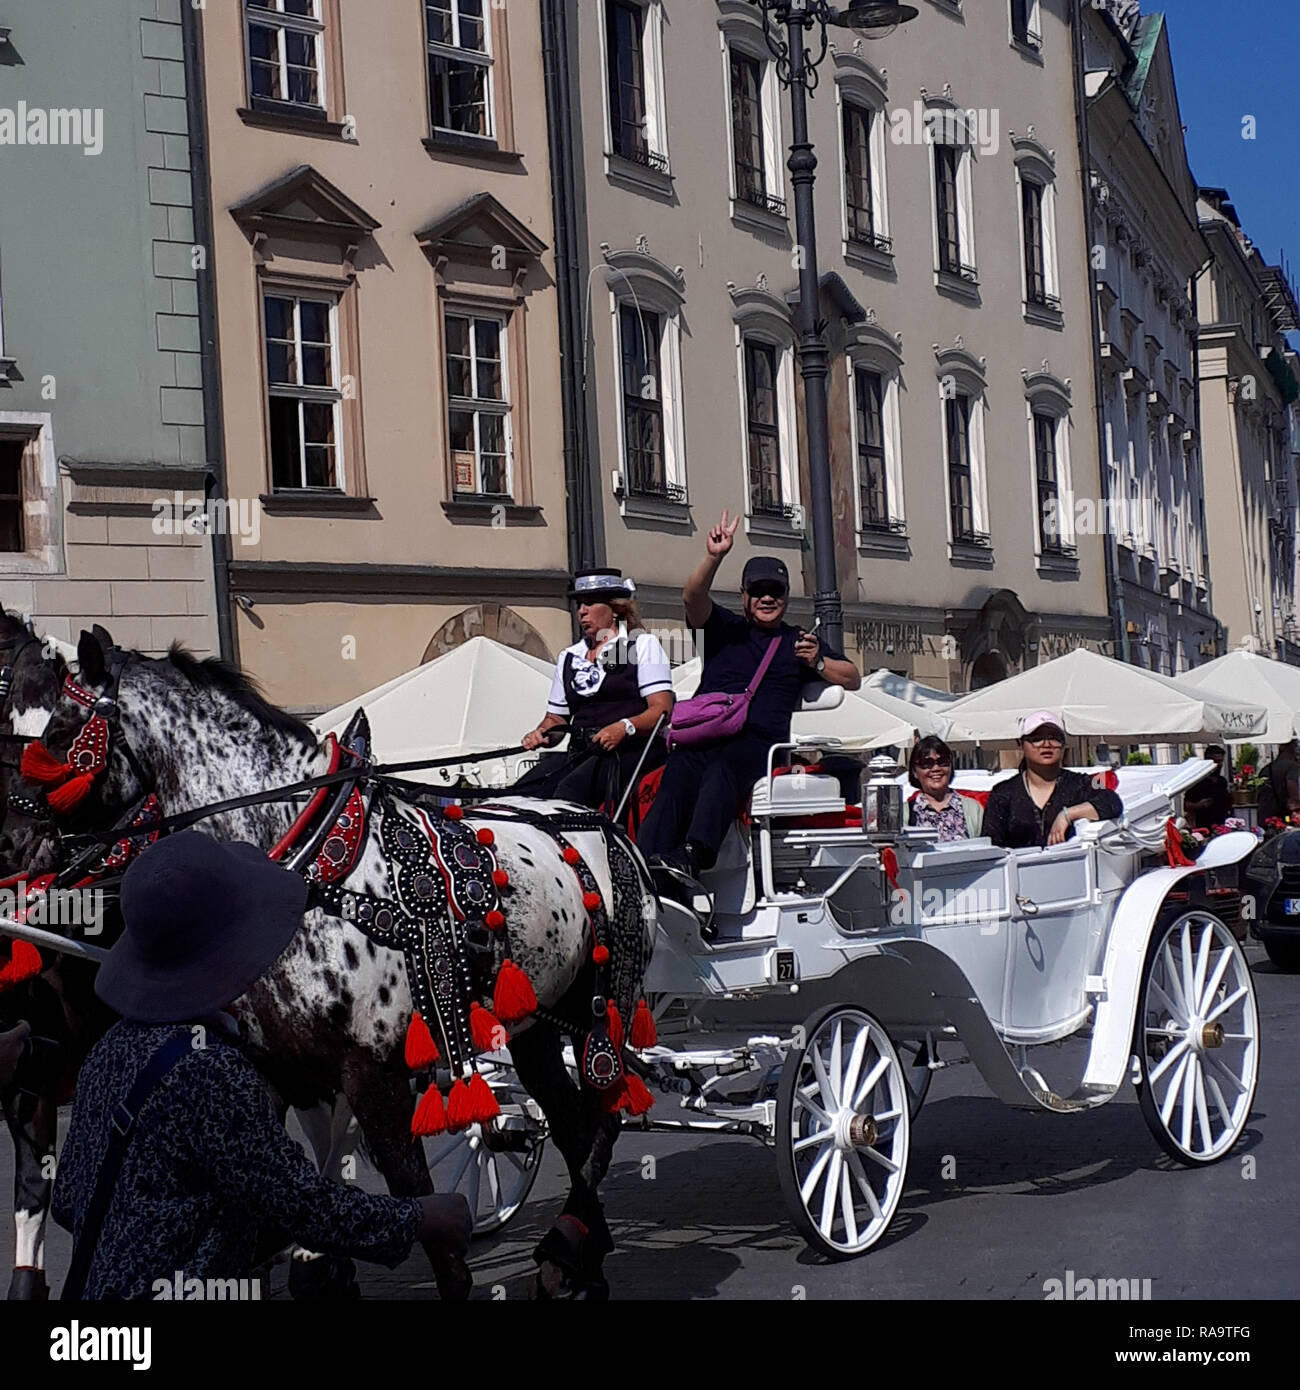 Carriage ride around the city centre streets of Krakow in Poland - Stock Image